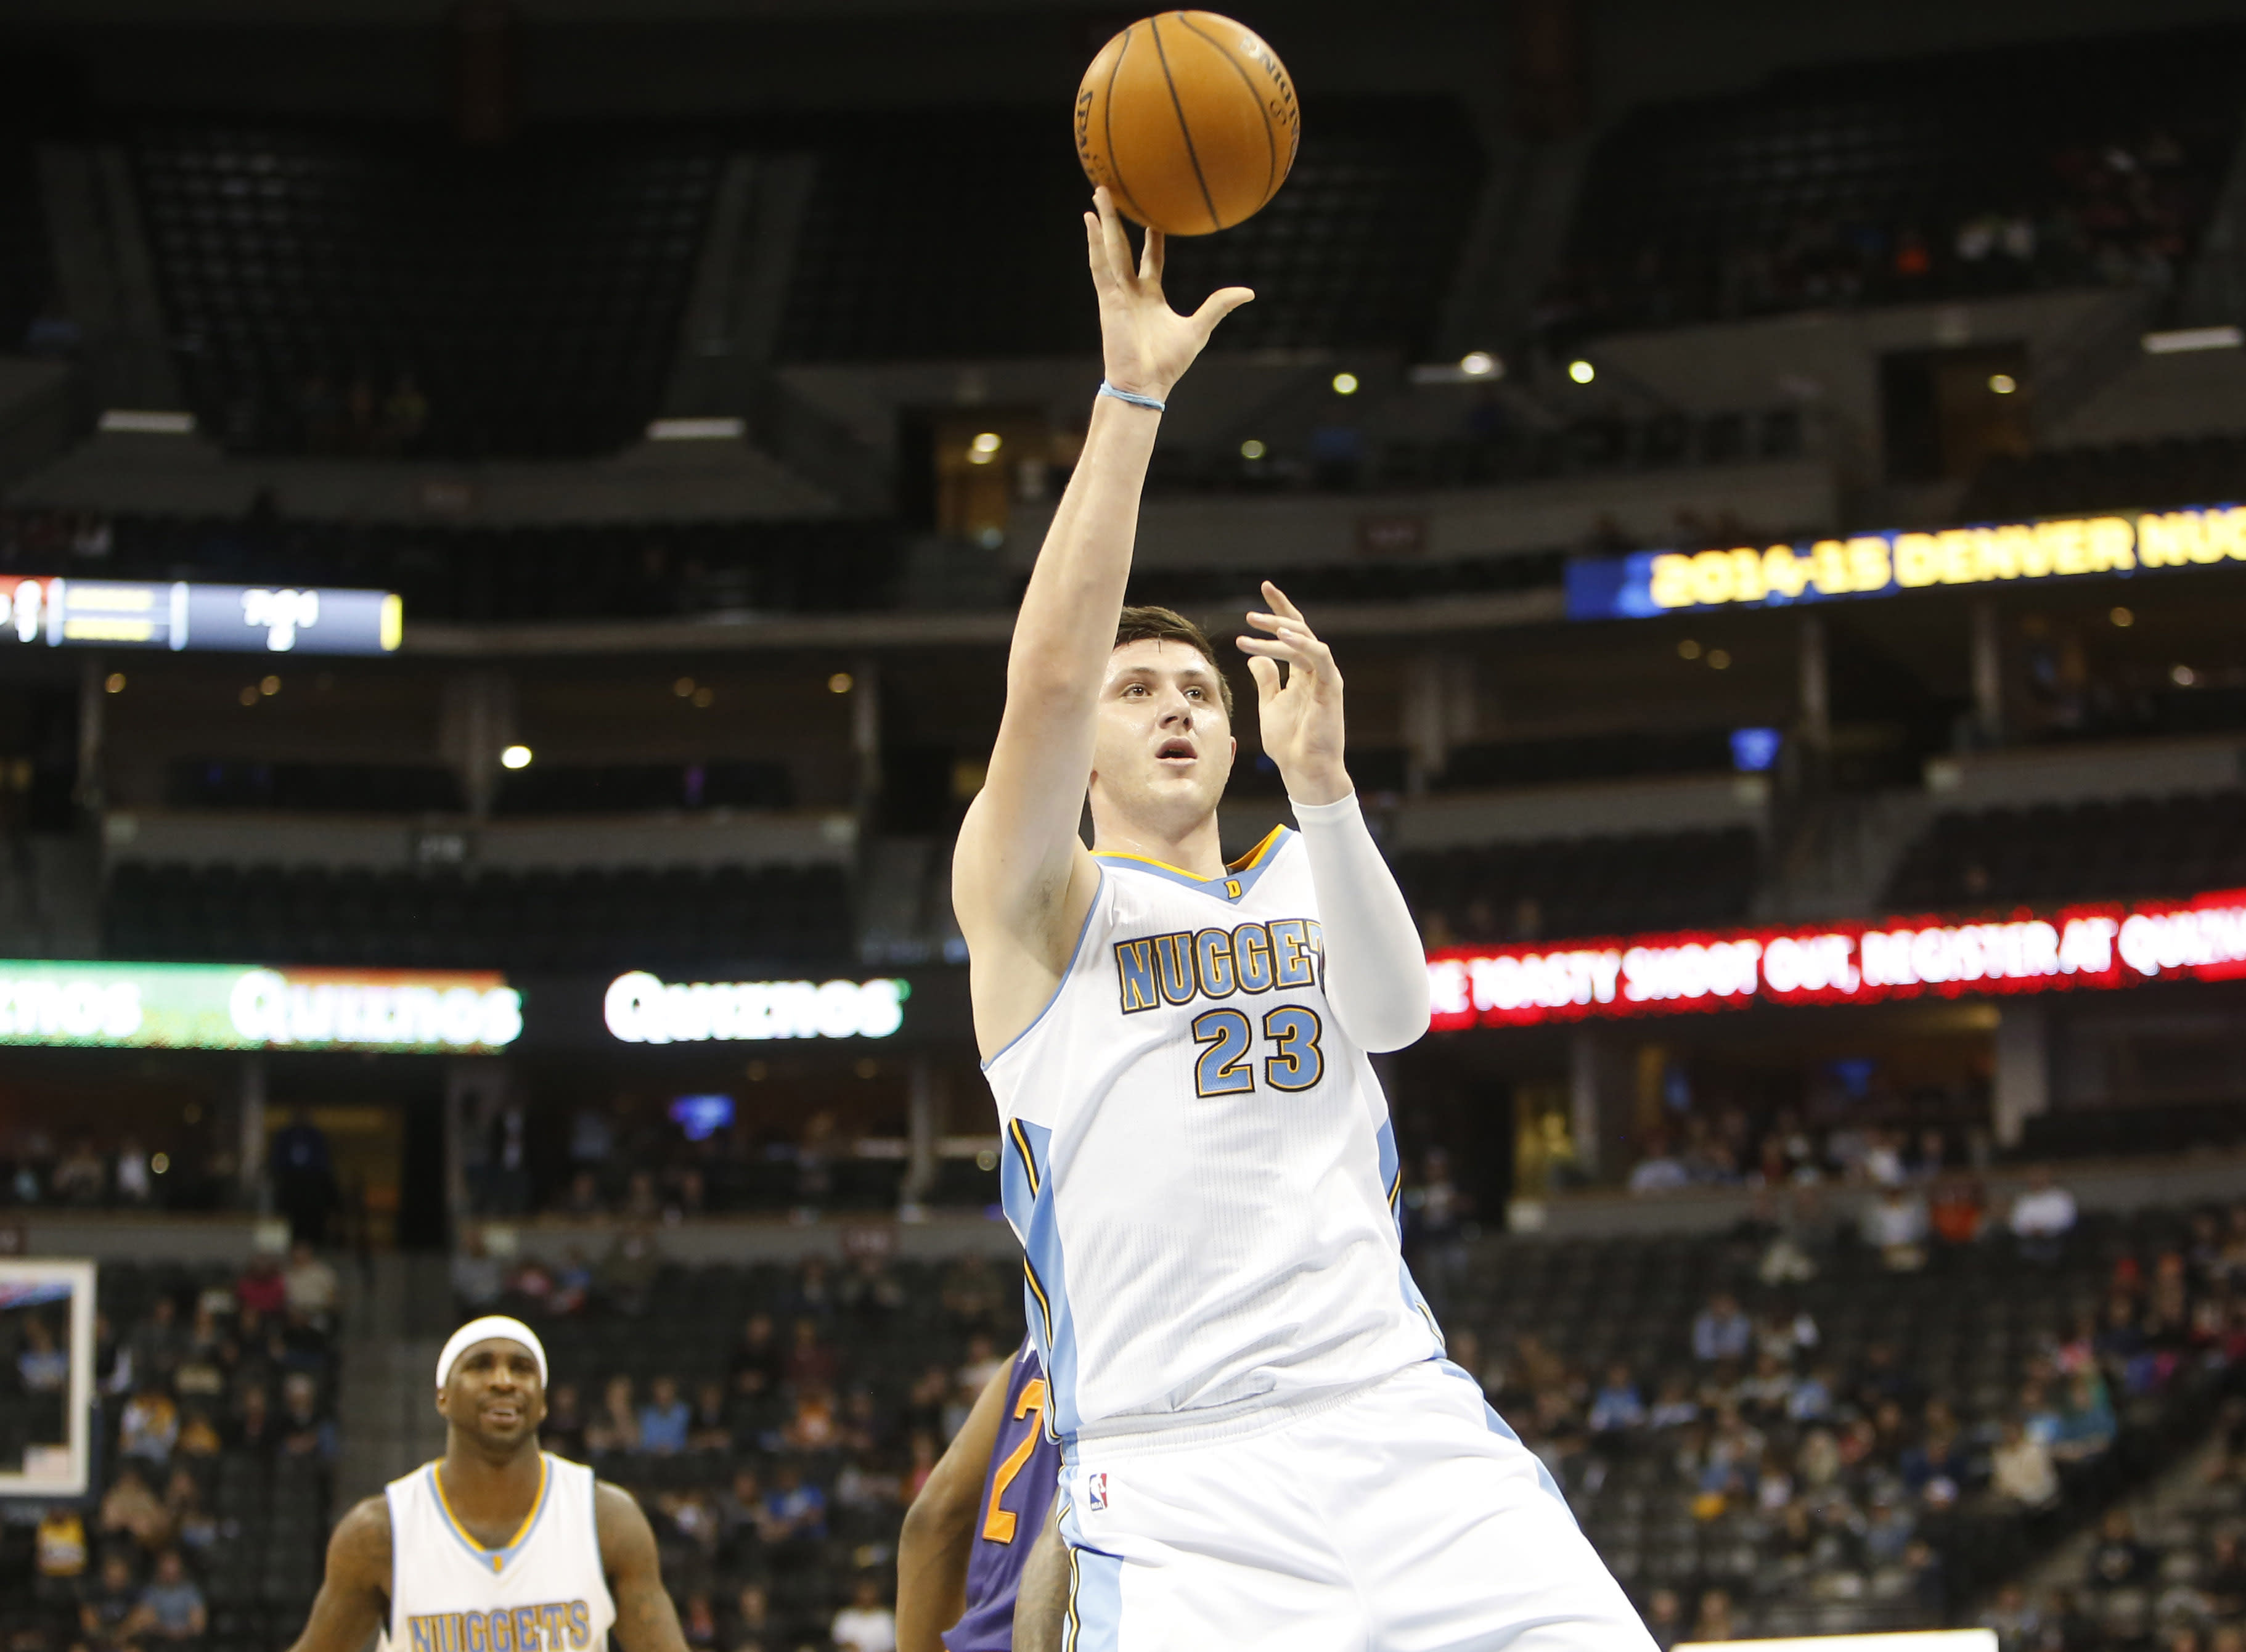 Jusuf Nurkic taunts with kindness, earns hilarious technical foul